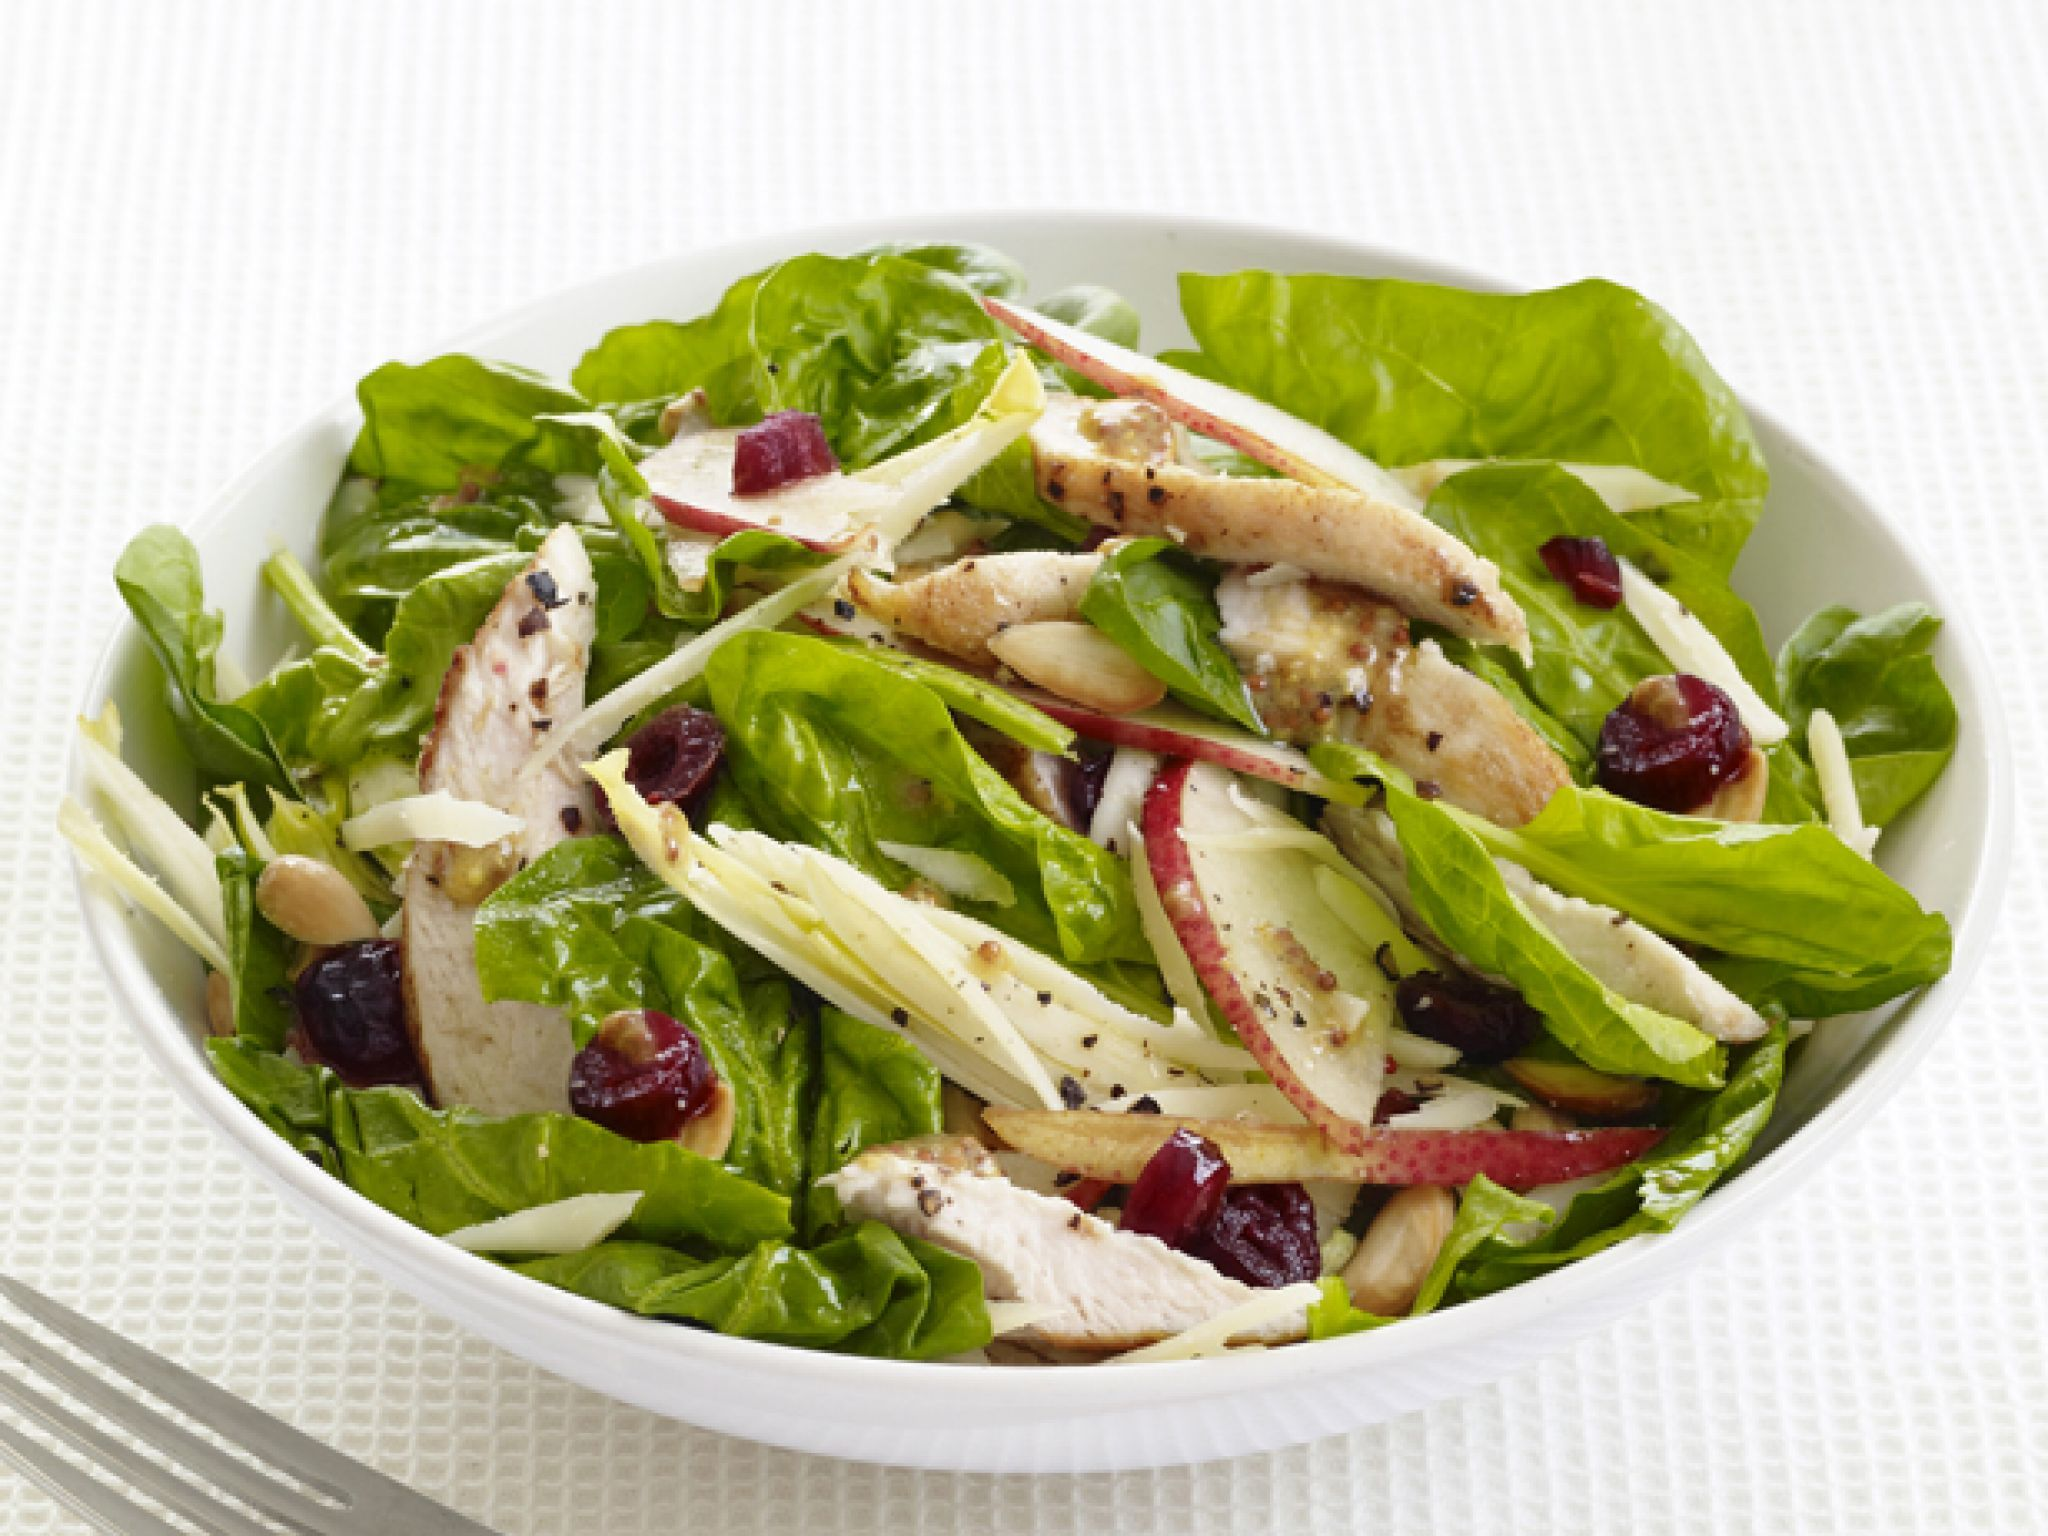 Spinach pear and chicken salad recipe pear spinach and gruyere spinach pear and chicken salad forumfinder Choice Image